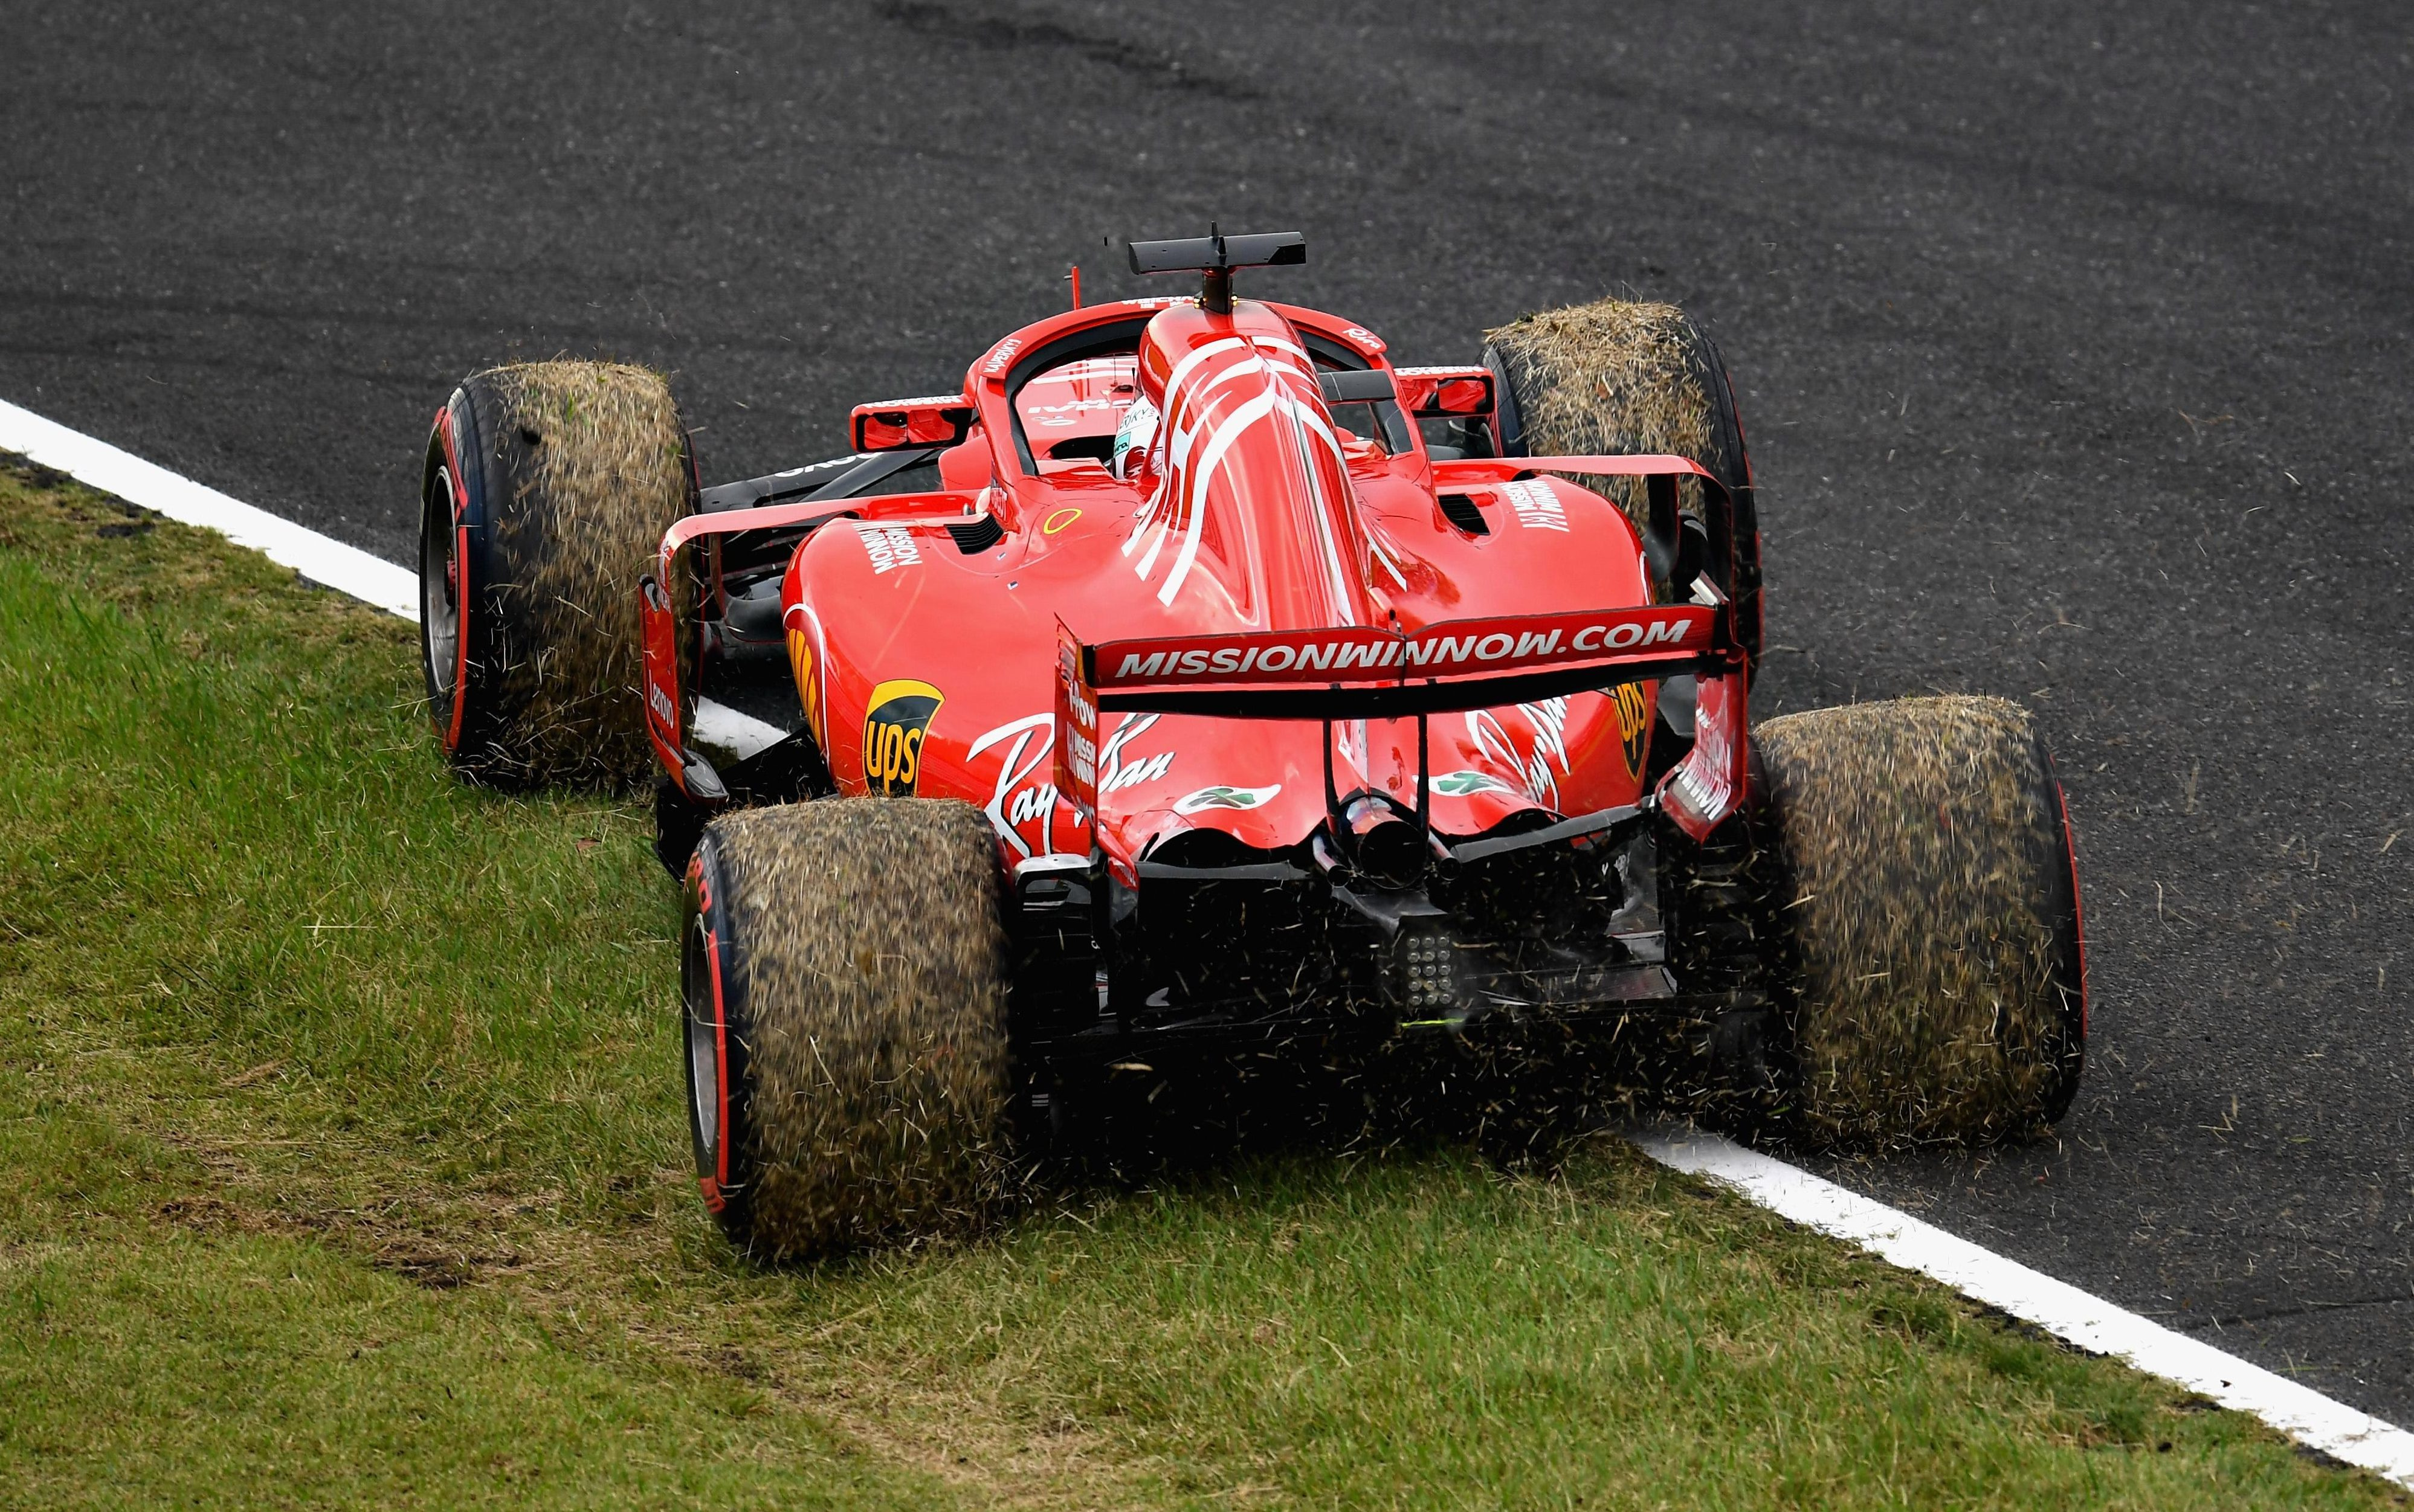 Sebastian Vettel spun on to the grass at Turn 11 but recovered to continue